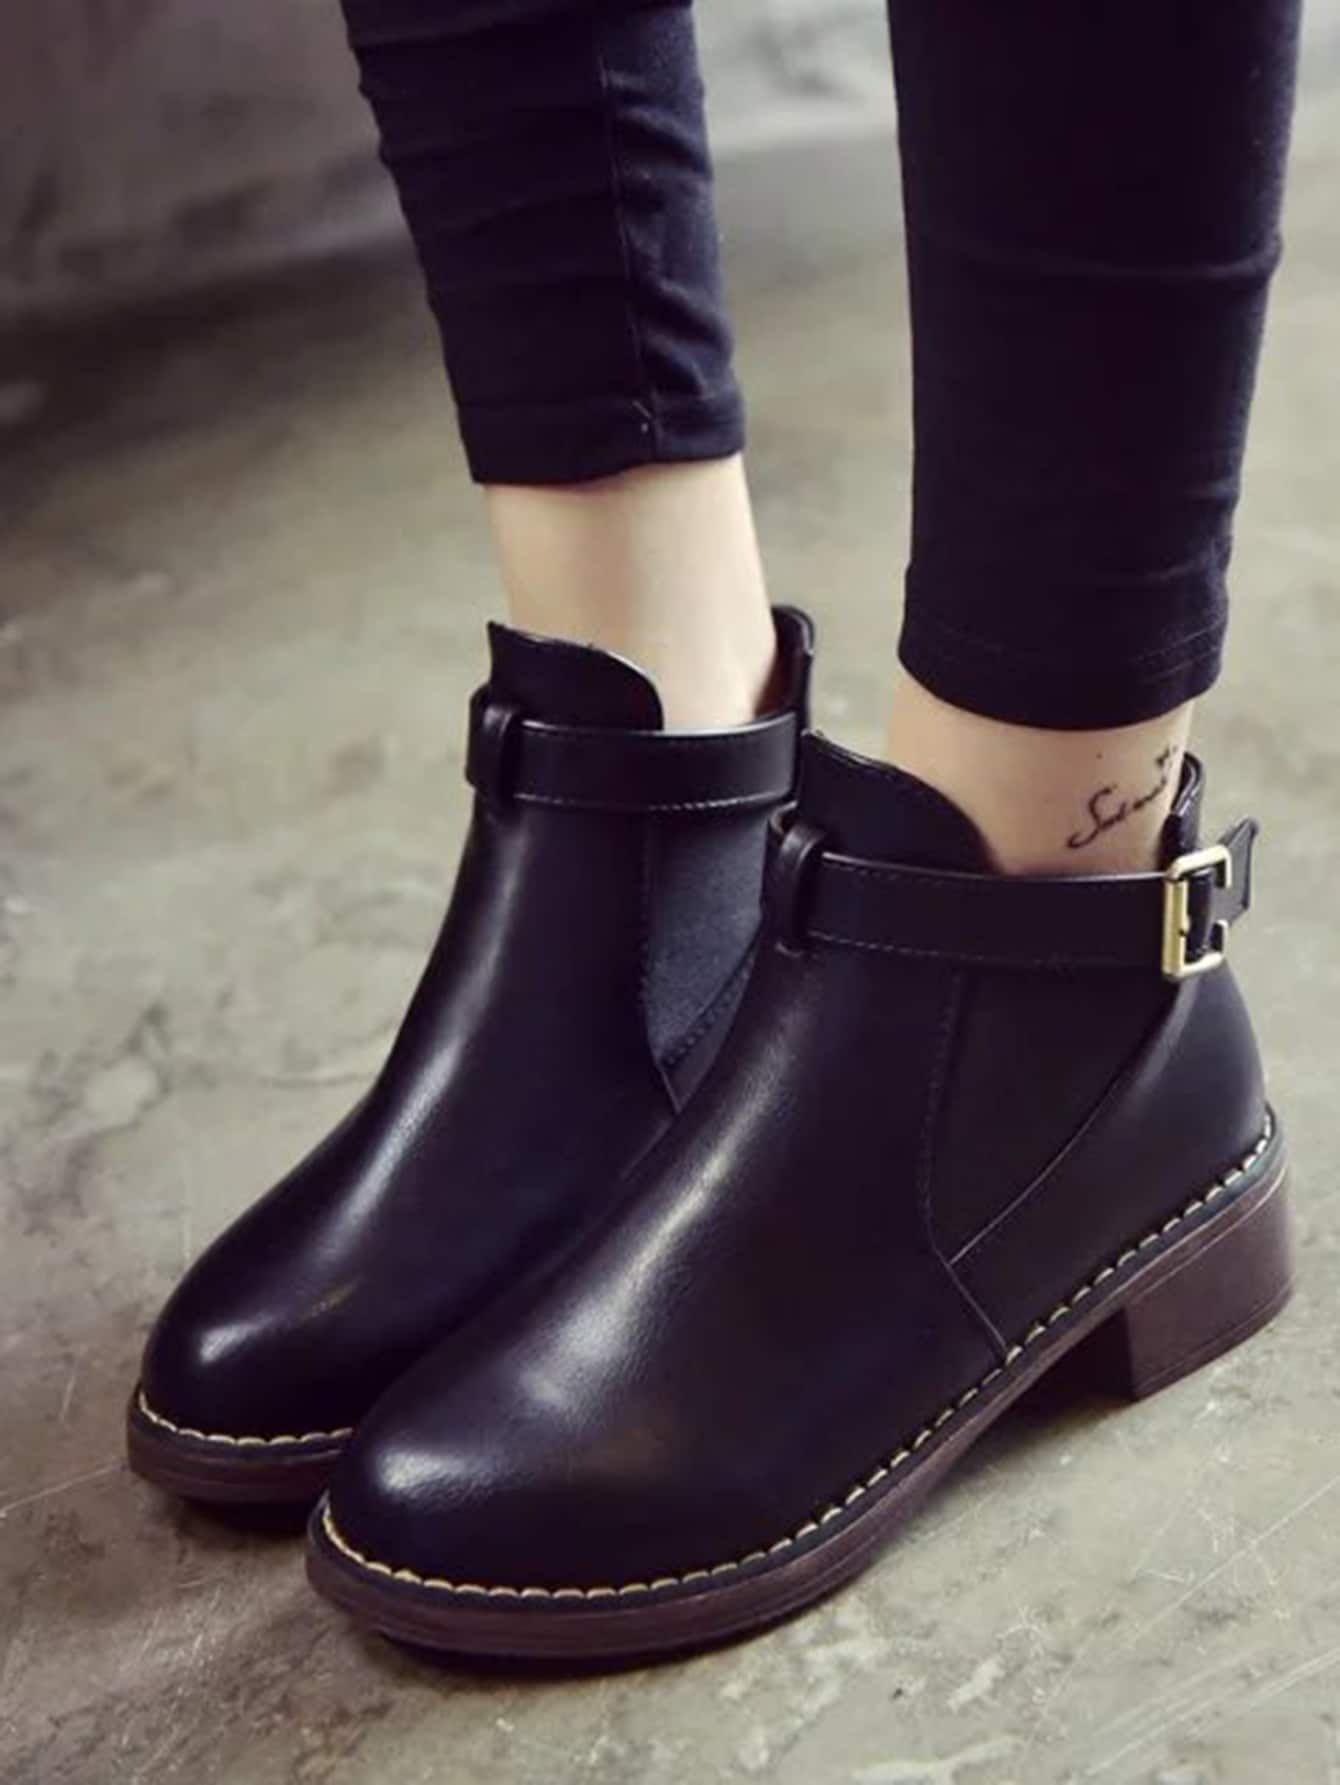 79deb4496 Casual Round Toe Ankle No zipper Black Mid Heel Chunky Side Buckle PU  Elastic Ankle Boots